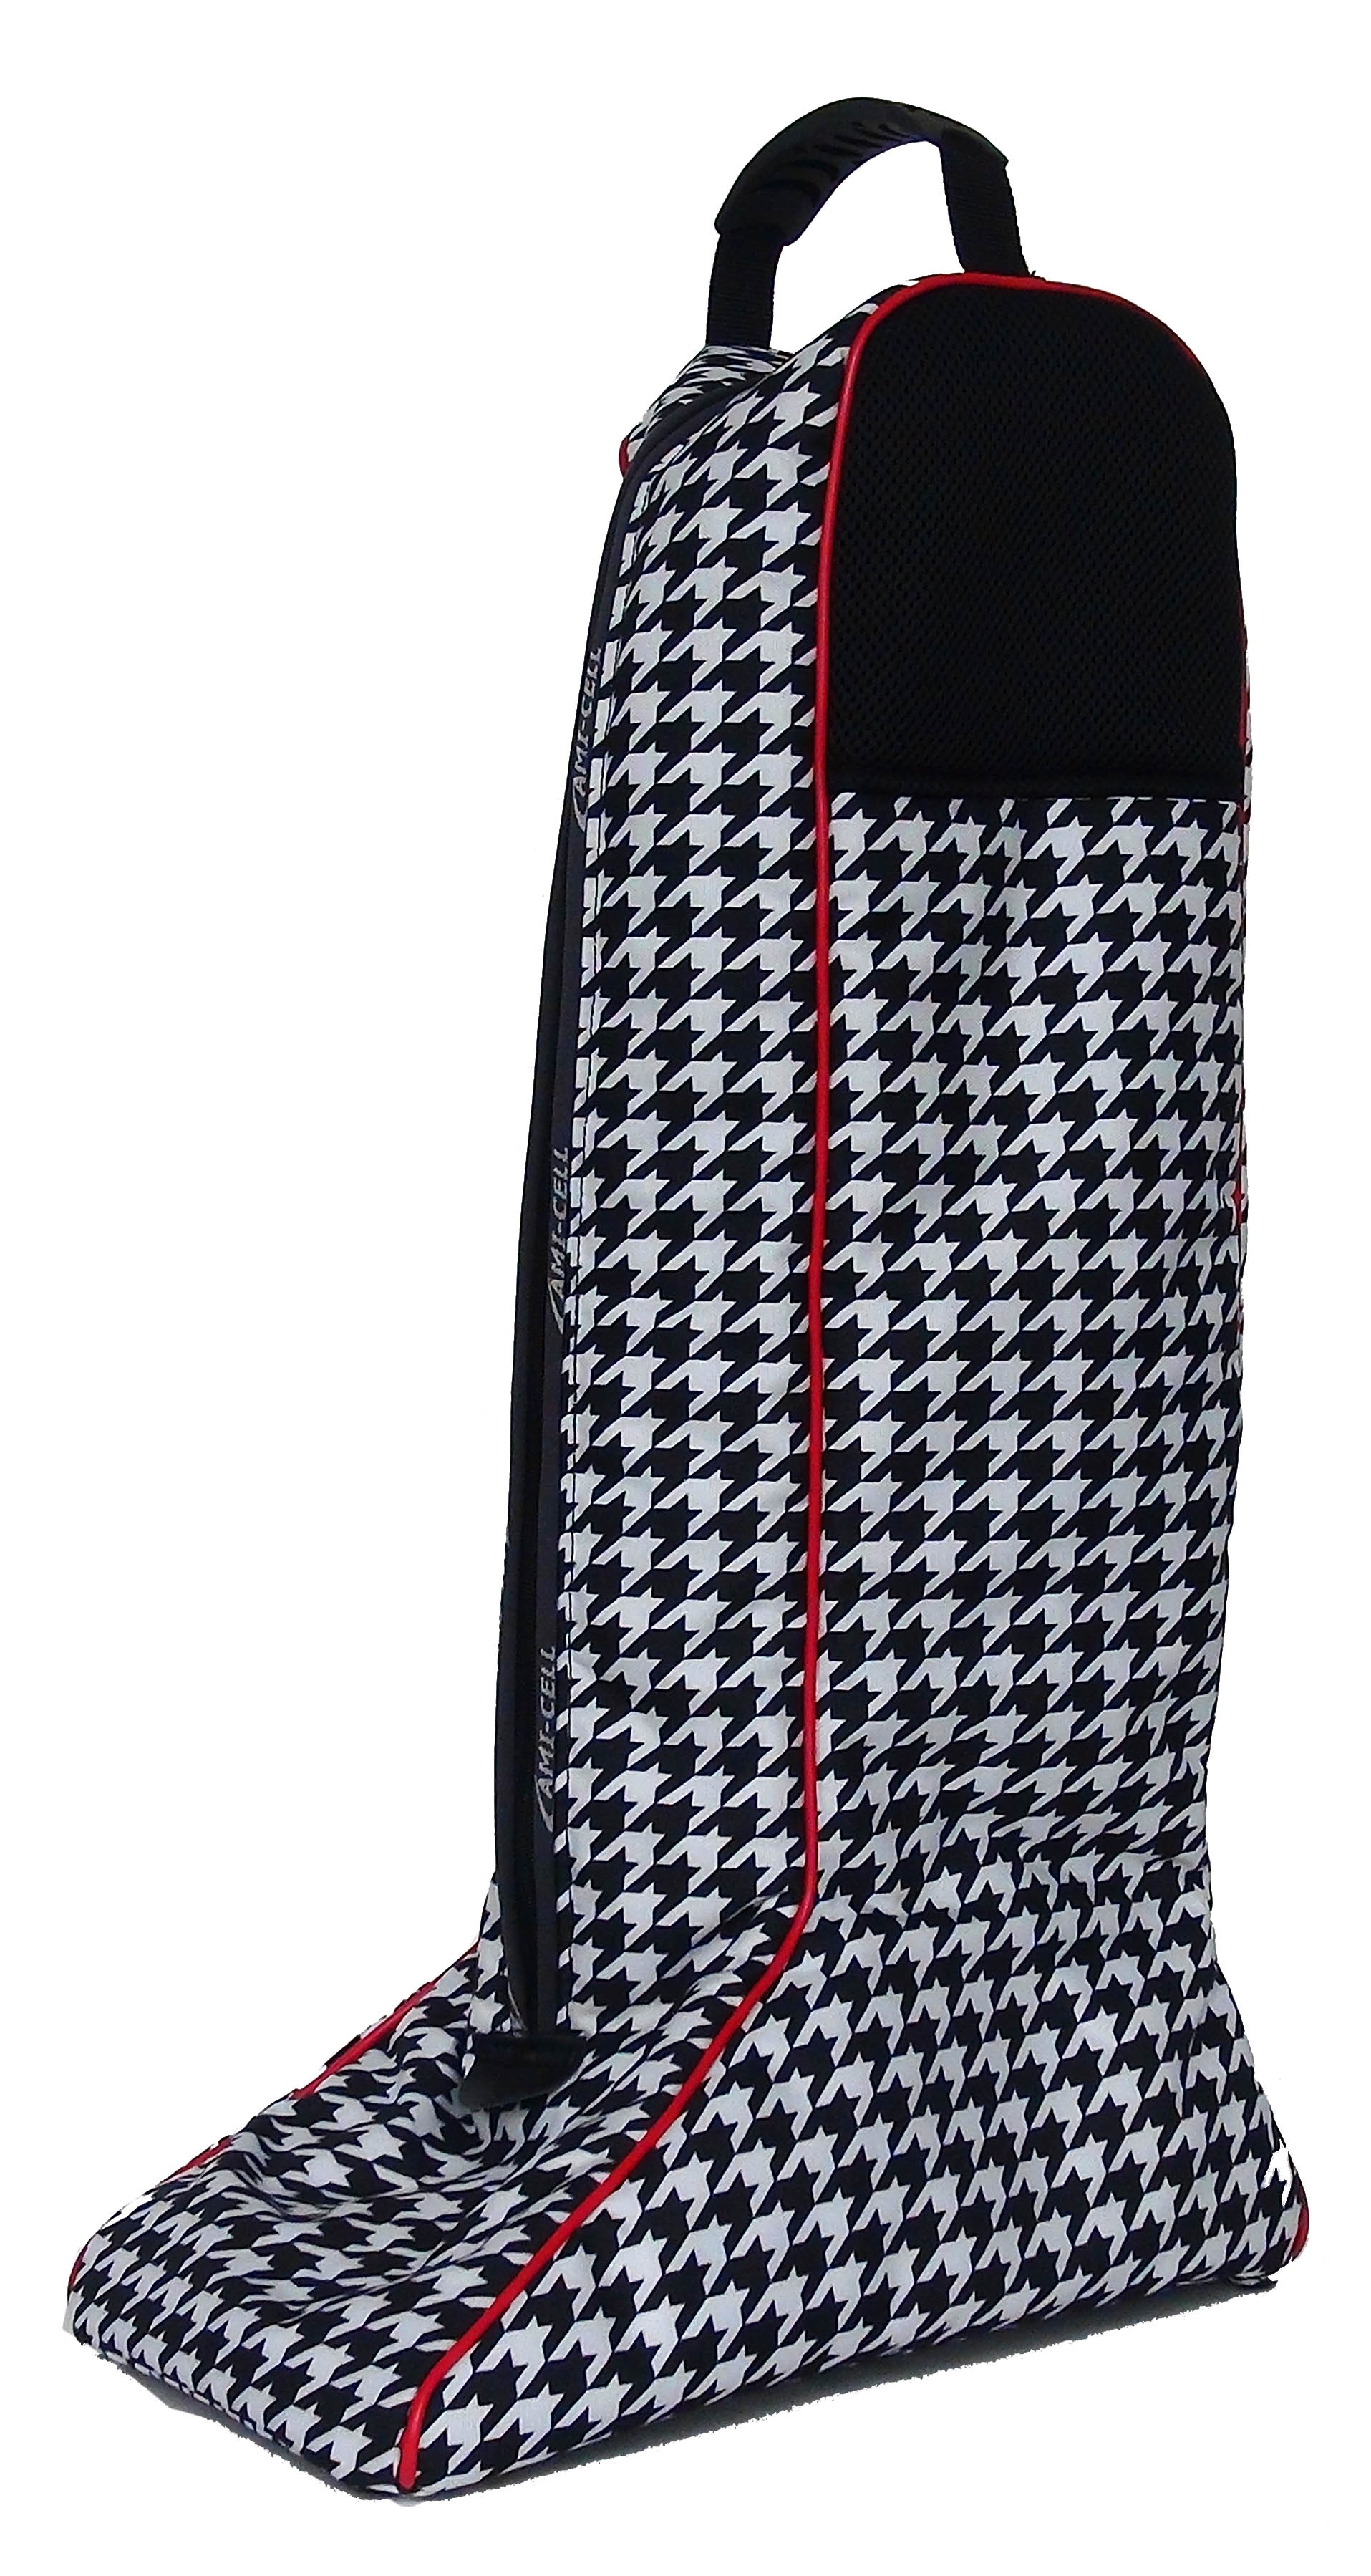 Lami-Cell Houndstooth Helmet Bag